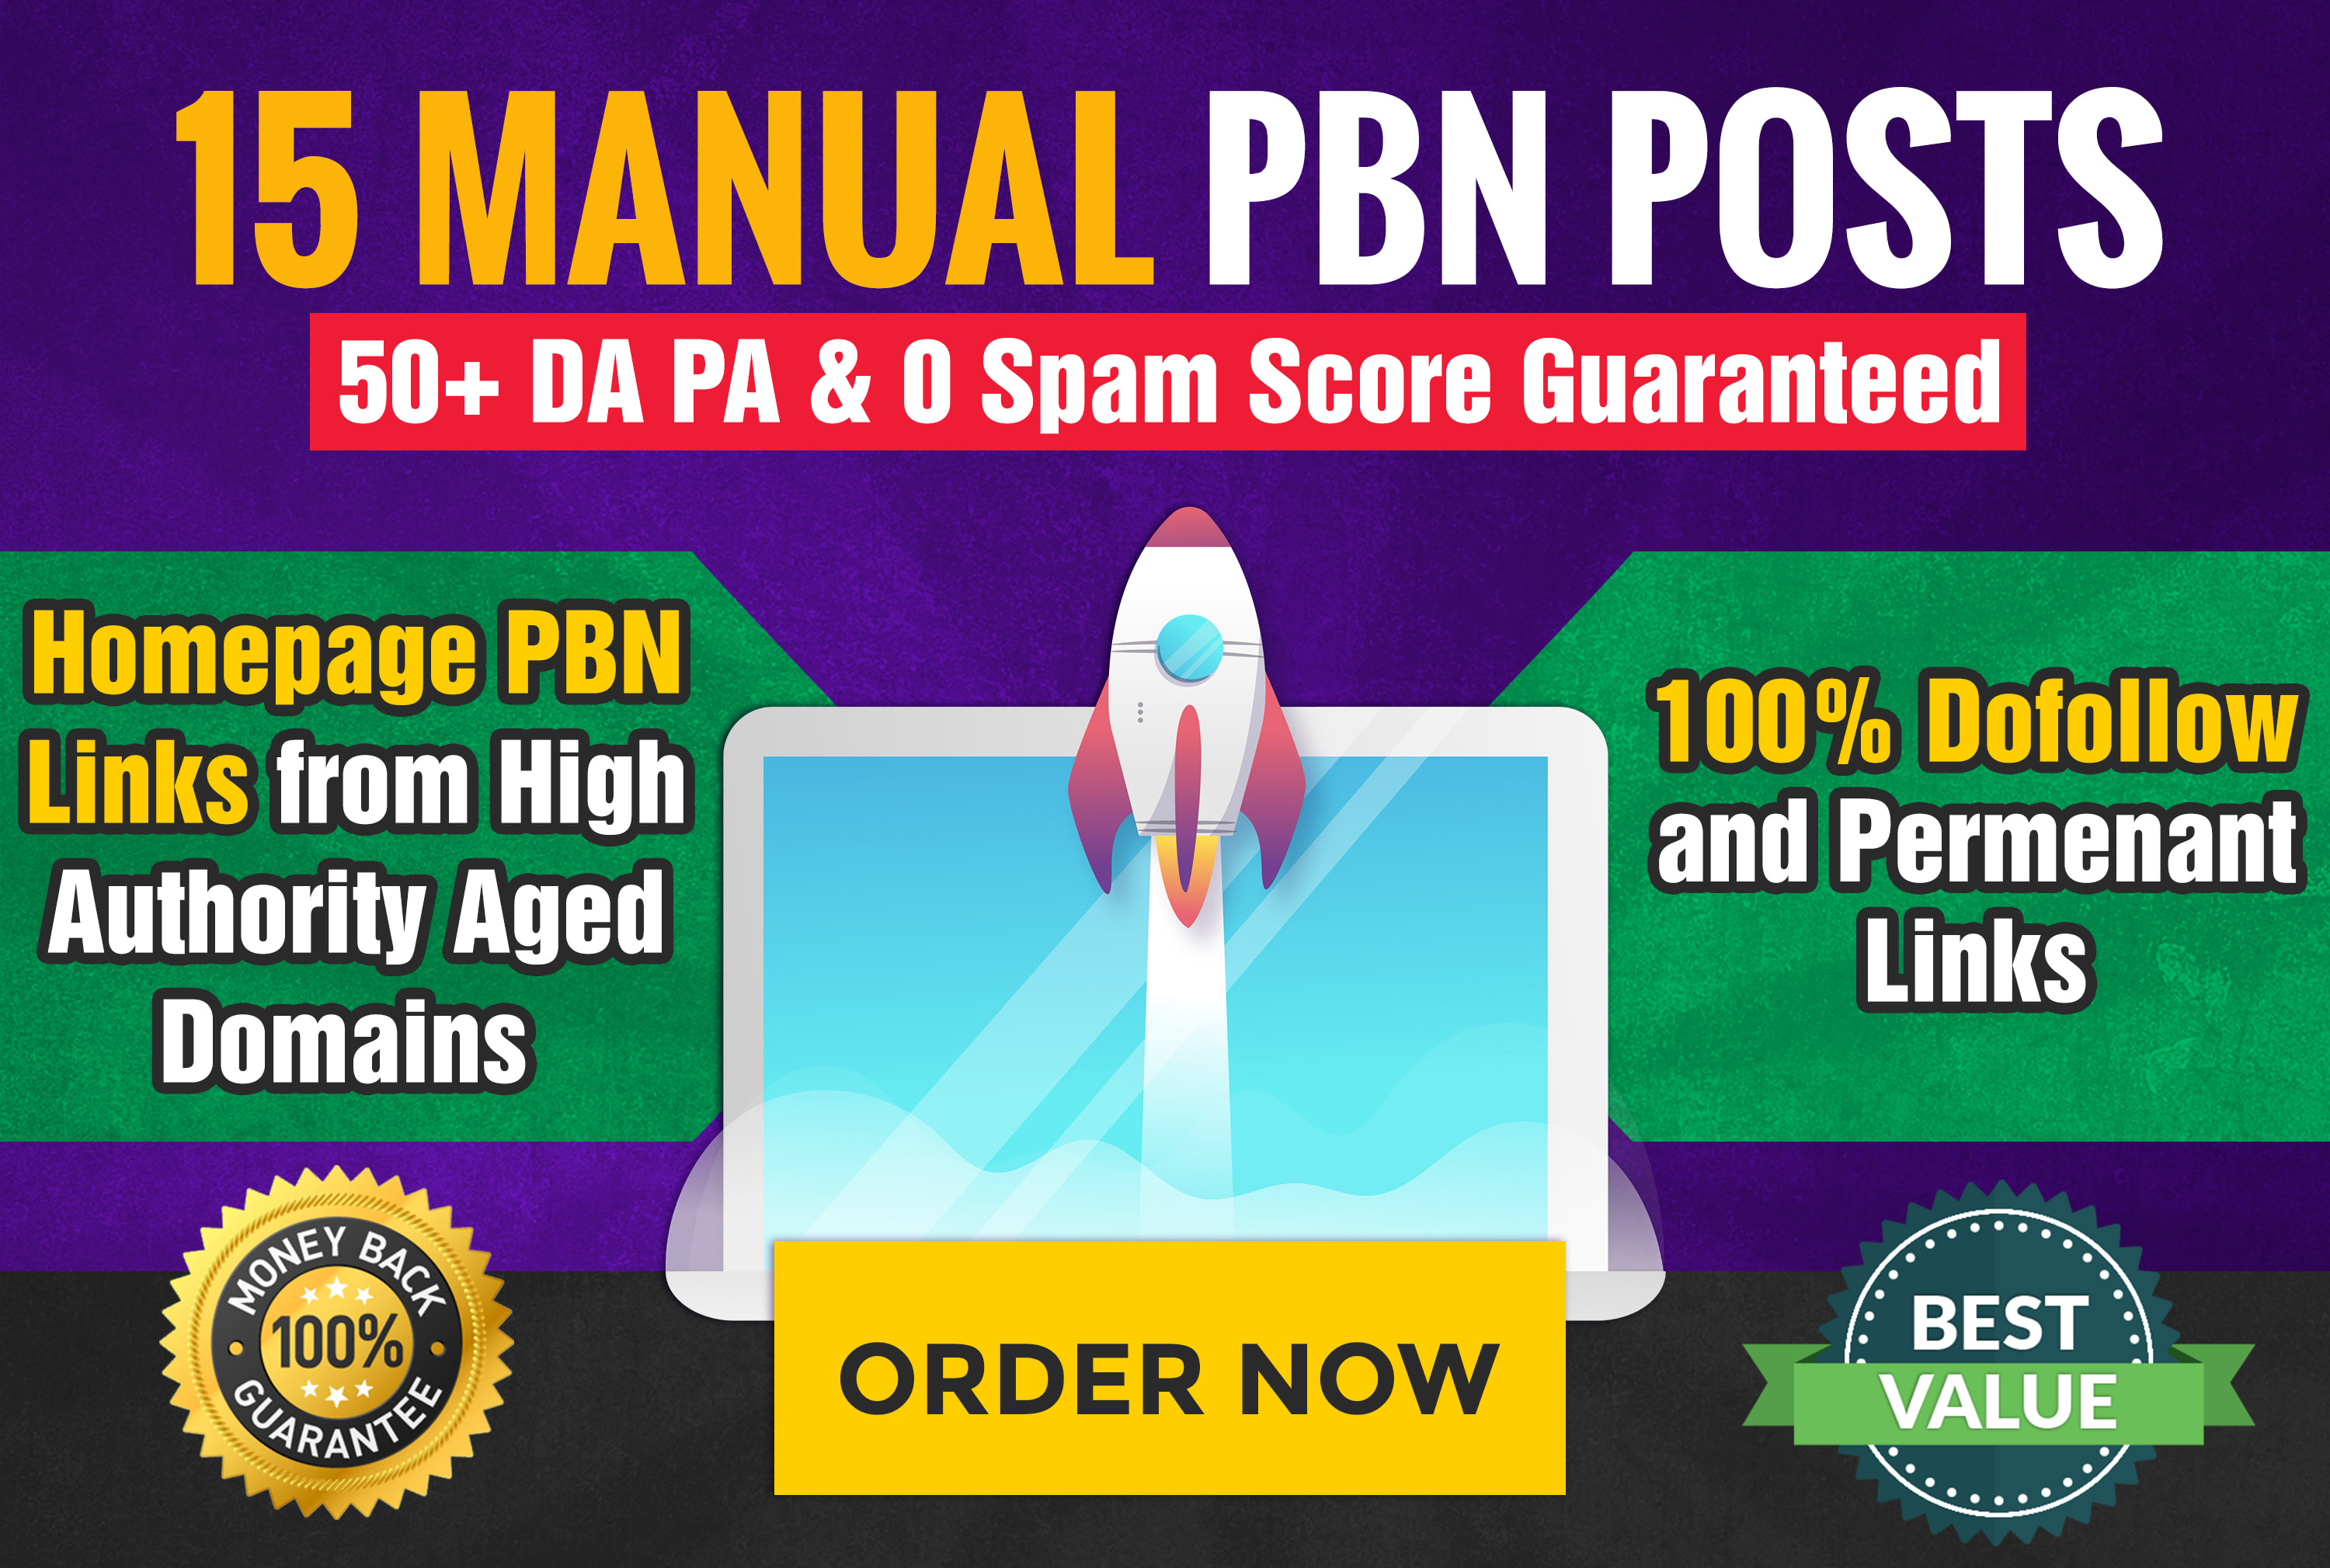 Powerful DA50+15 home page PBN do follow backlink